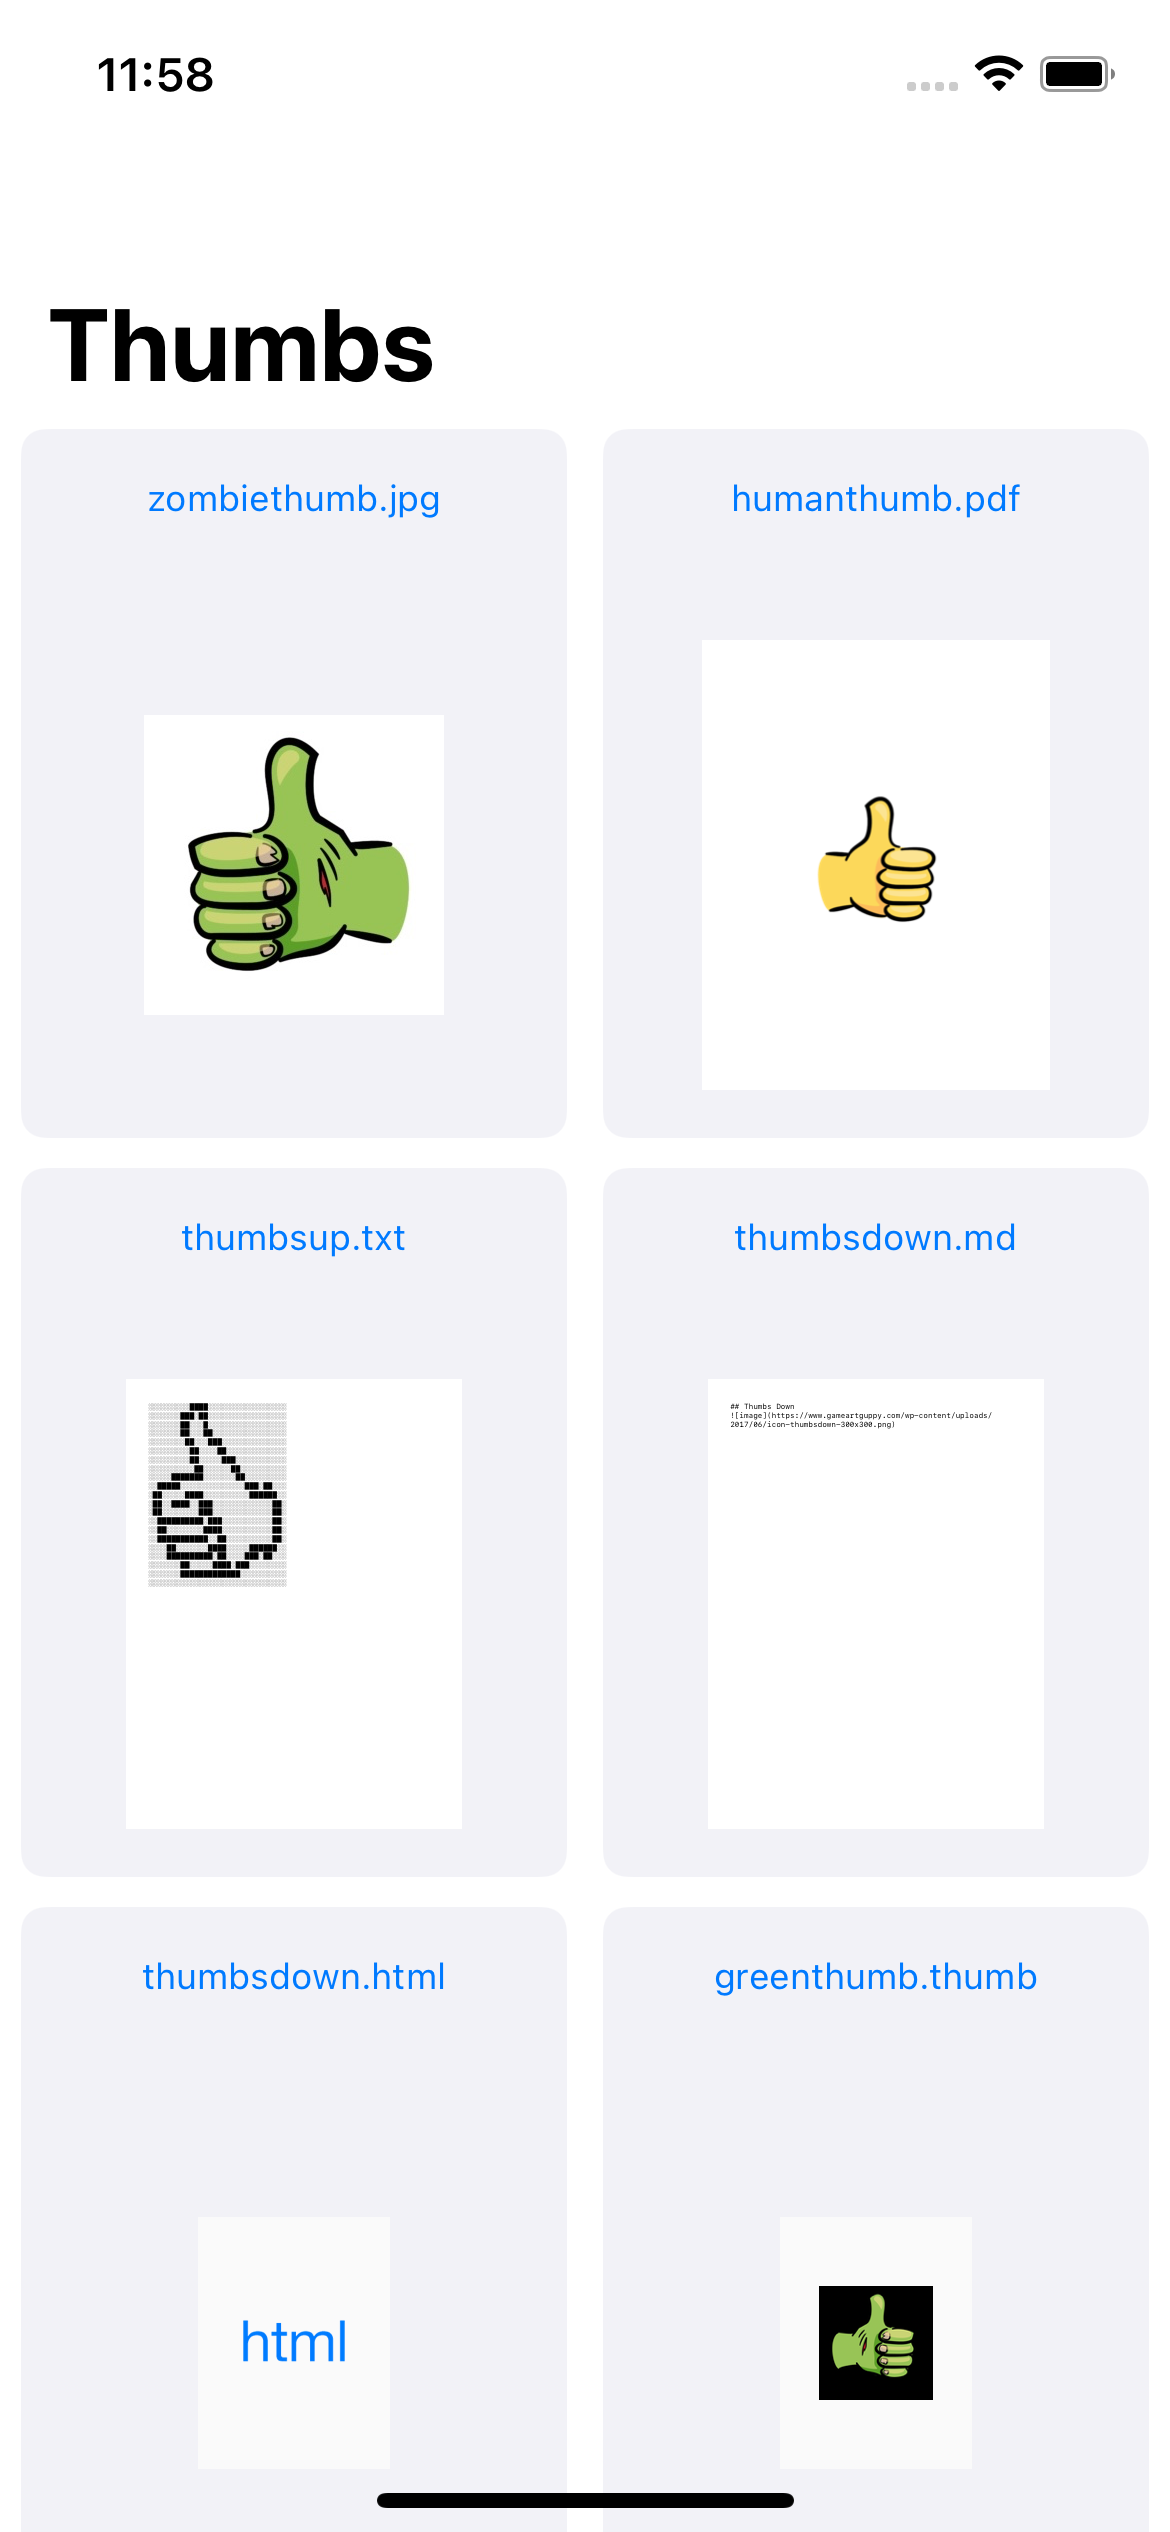 The RazeThumb app home screen now showing the RazeThumb app icon as a thumbnail for .thumb documents